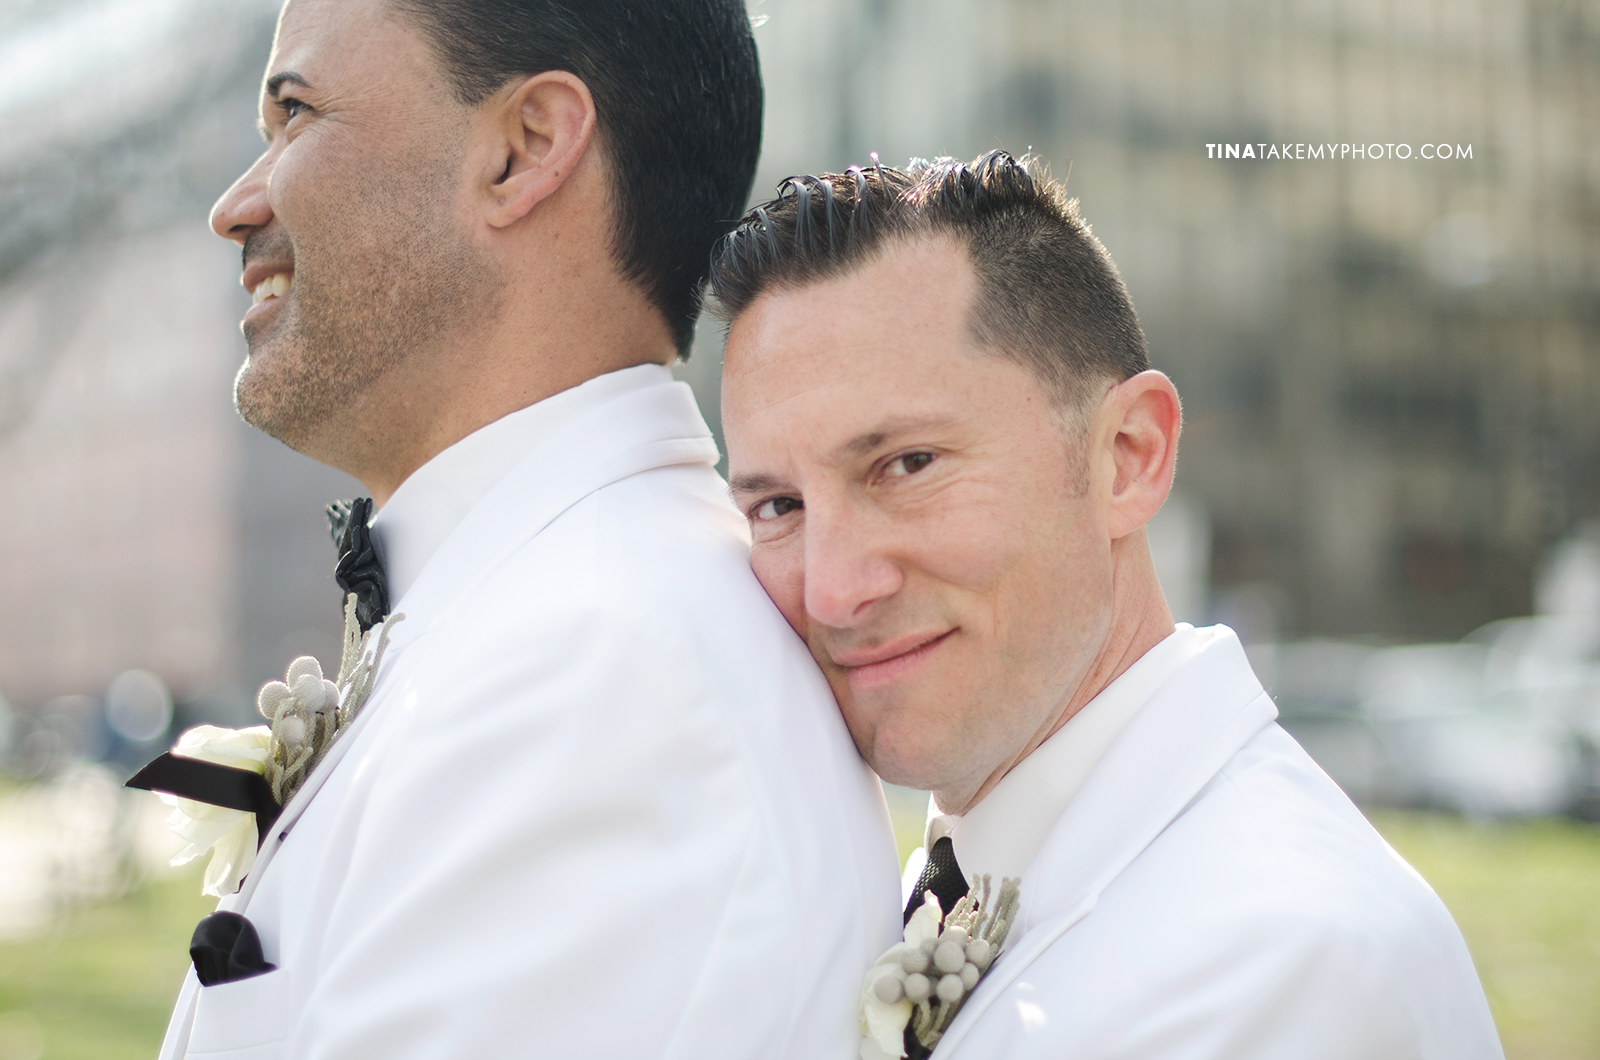 11-Washington-DC-Virginia-Gay-Same-Sex-Wedding-Men-12-13-14-Pose-City-Photographer